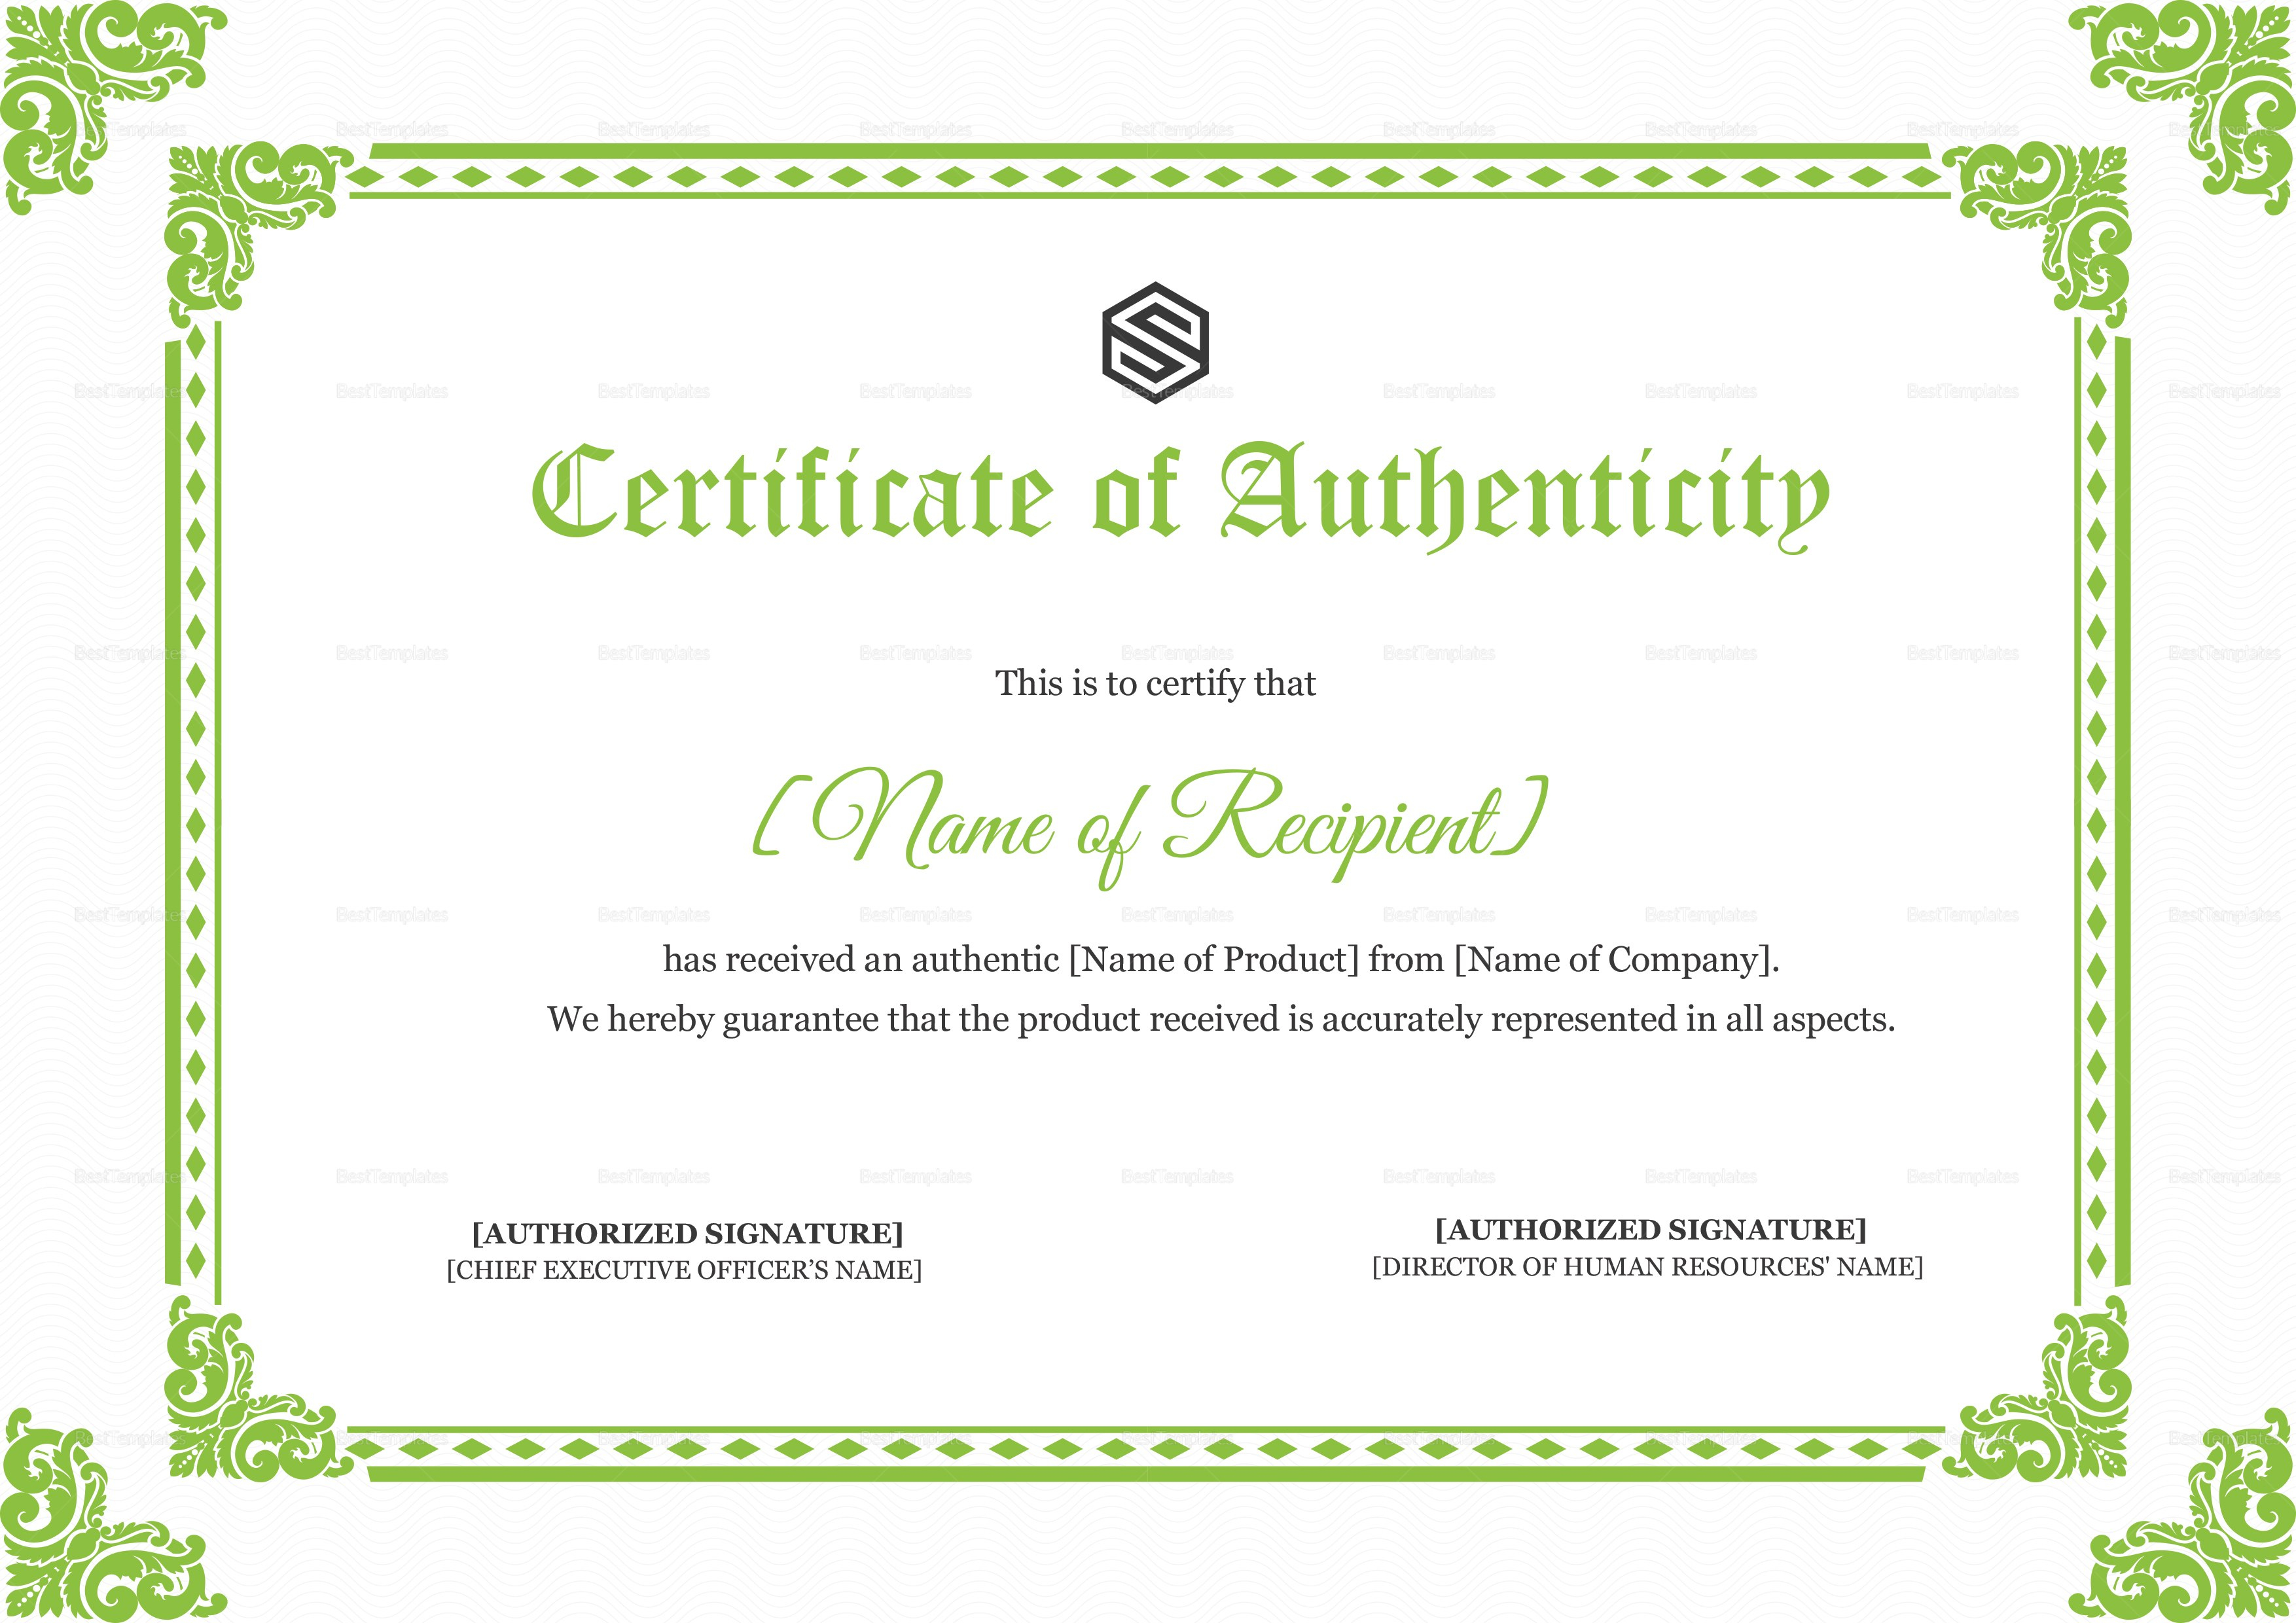 Certificate Of Authenticity Design Template In Psd Word Throughout Certificate Of Authenticity Template